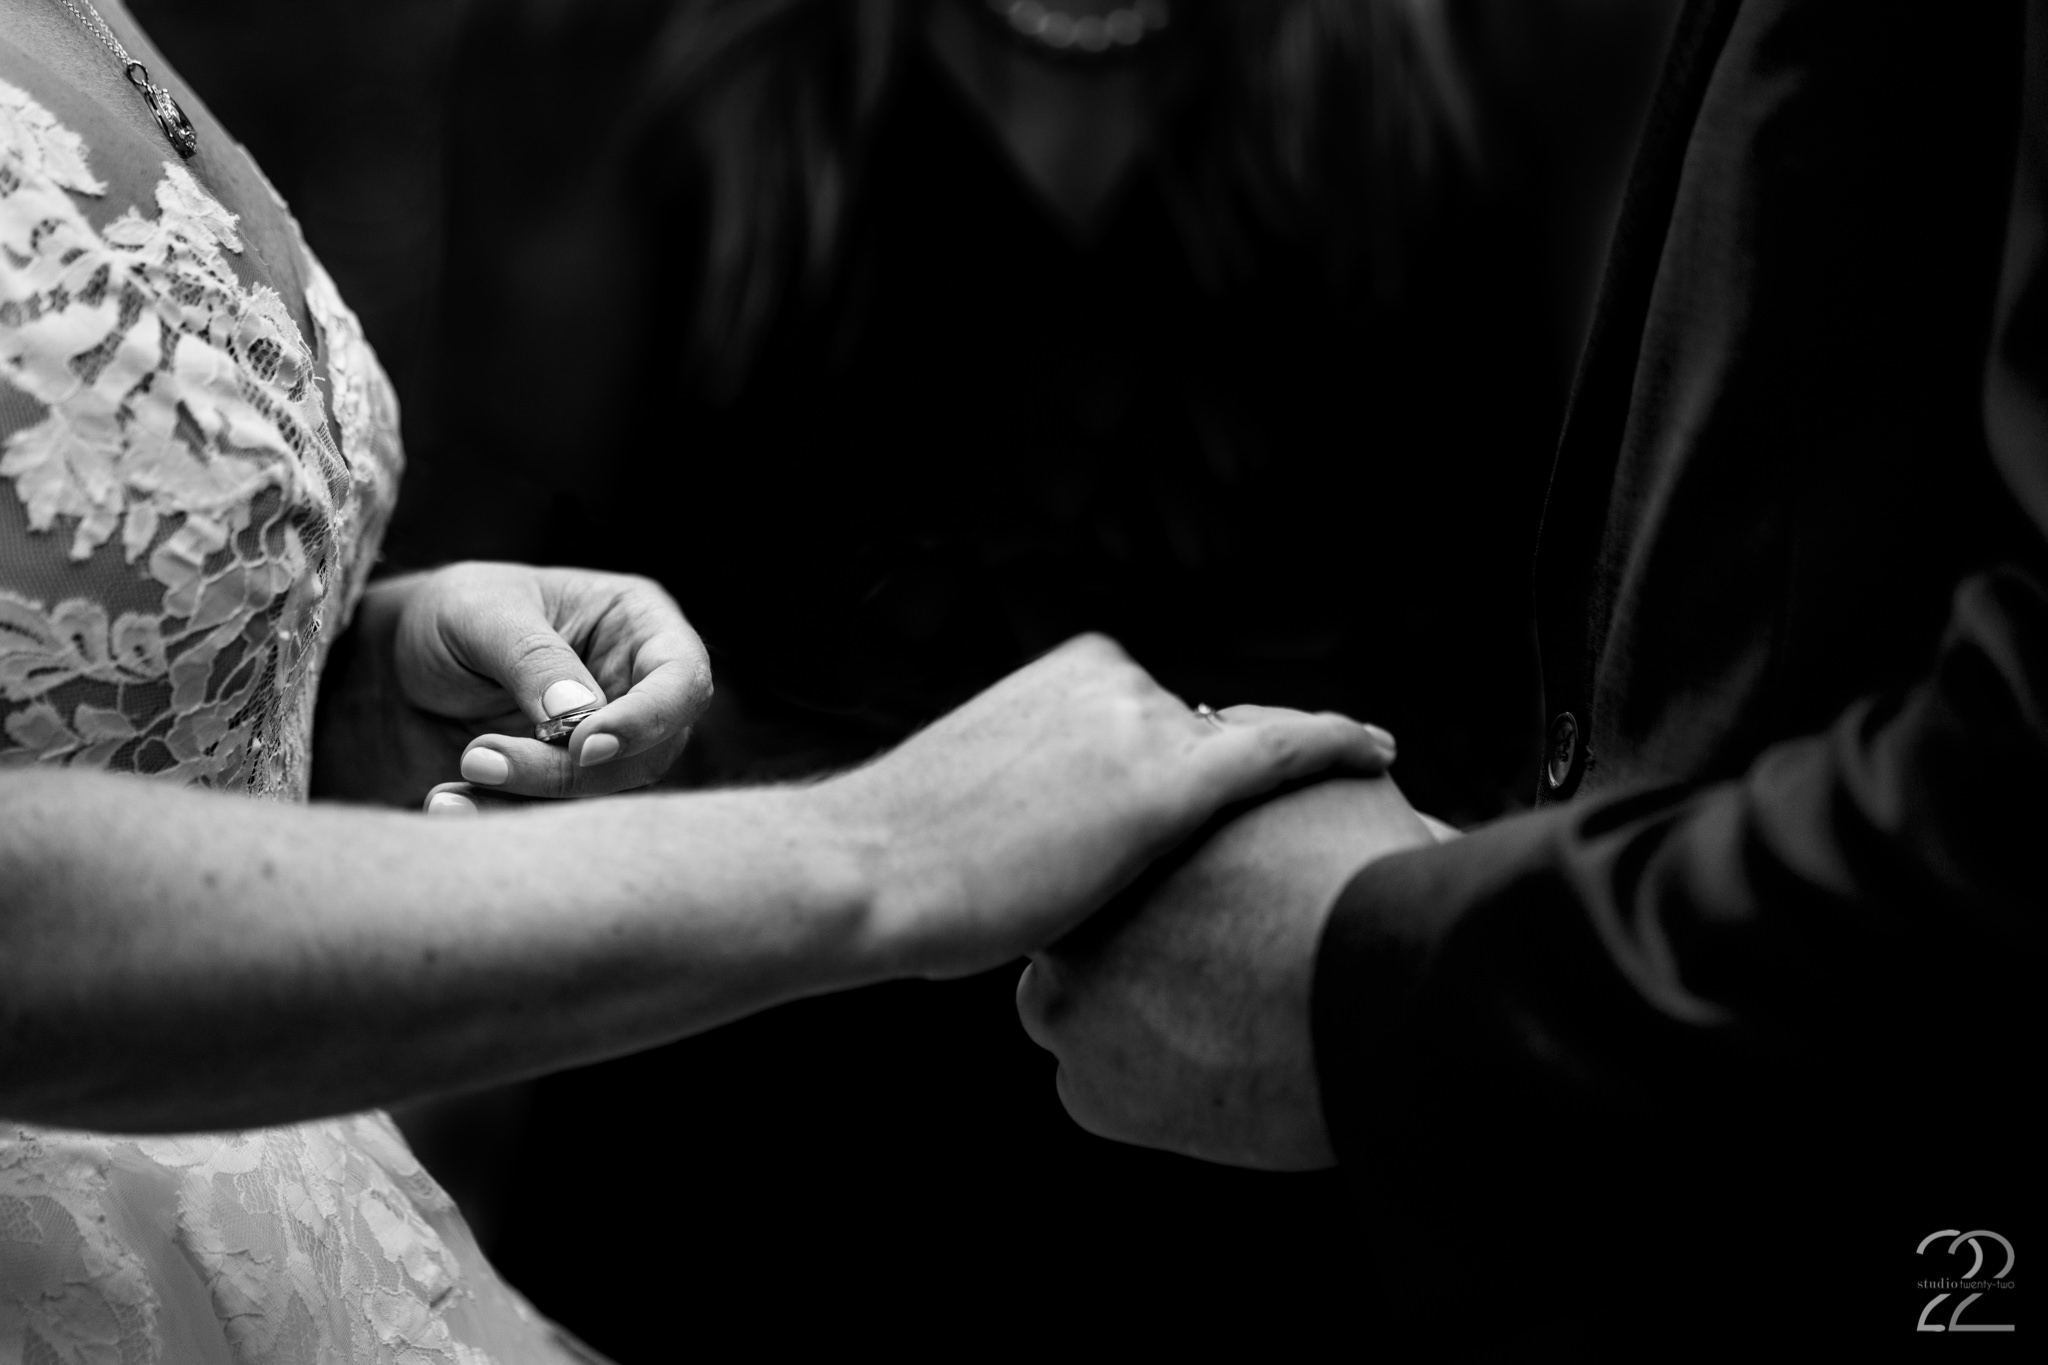 A ring is a symbol of the love you share, so a photo of receiving these rings should embody just that. Megan at Studio 22 Photography in Ohio looks for the meaning behind each part of your day and captures it for you.